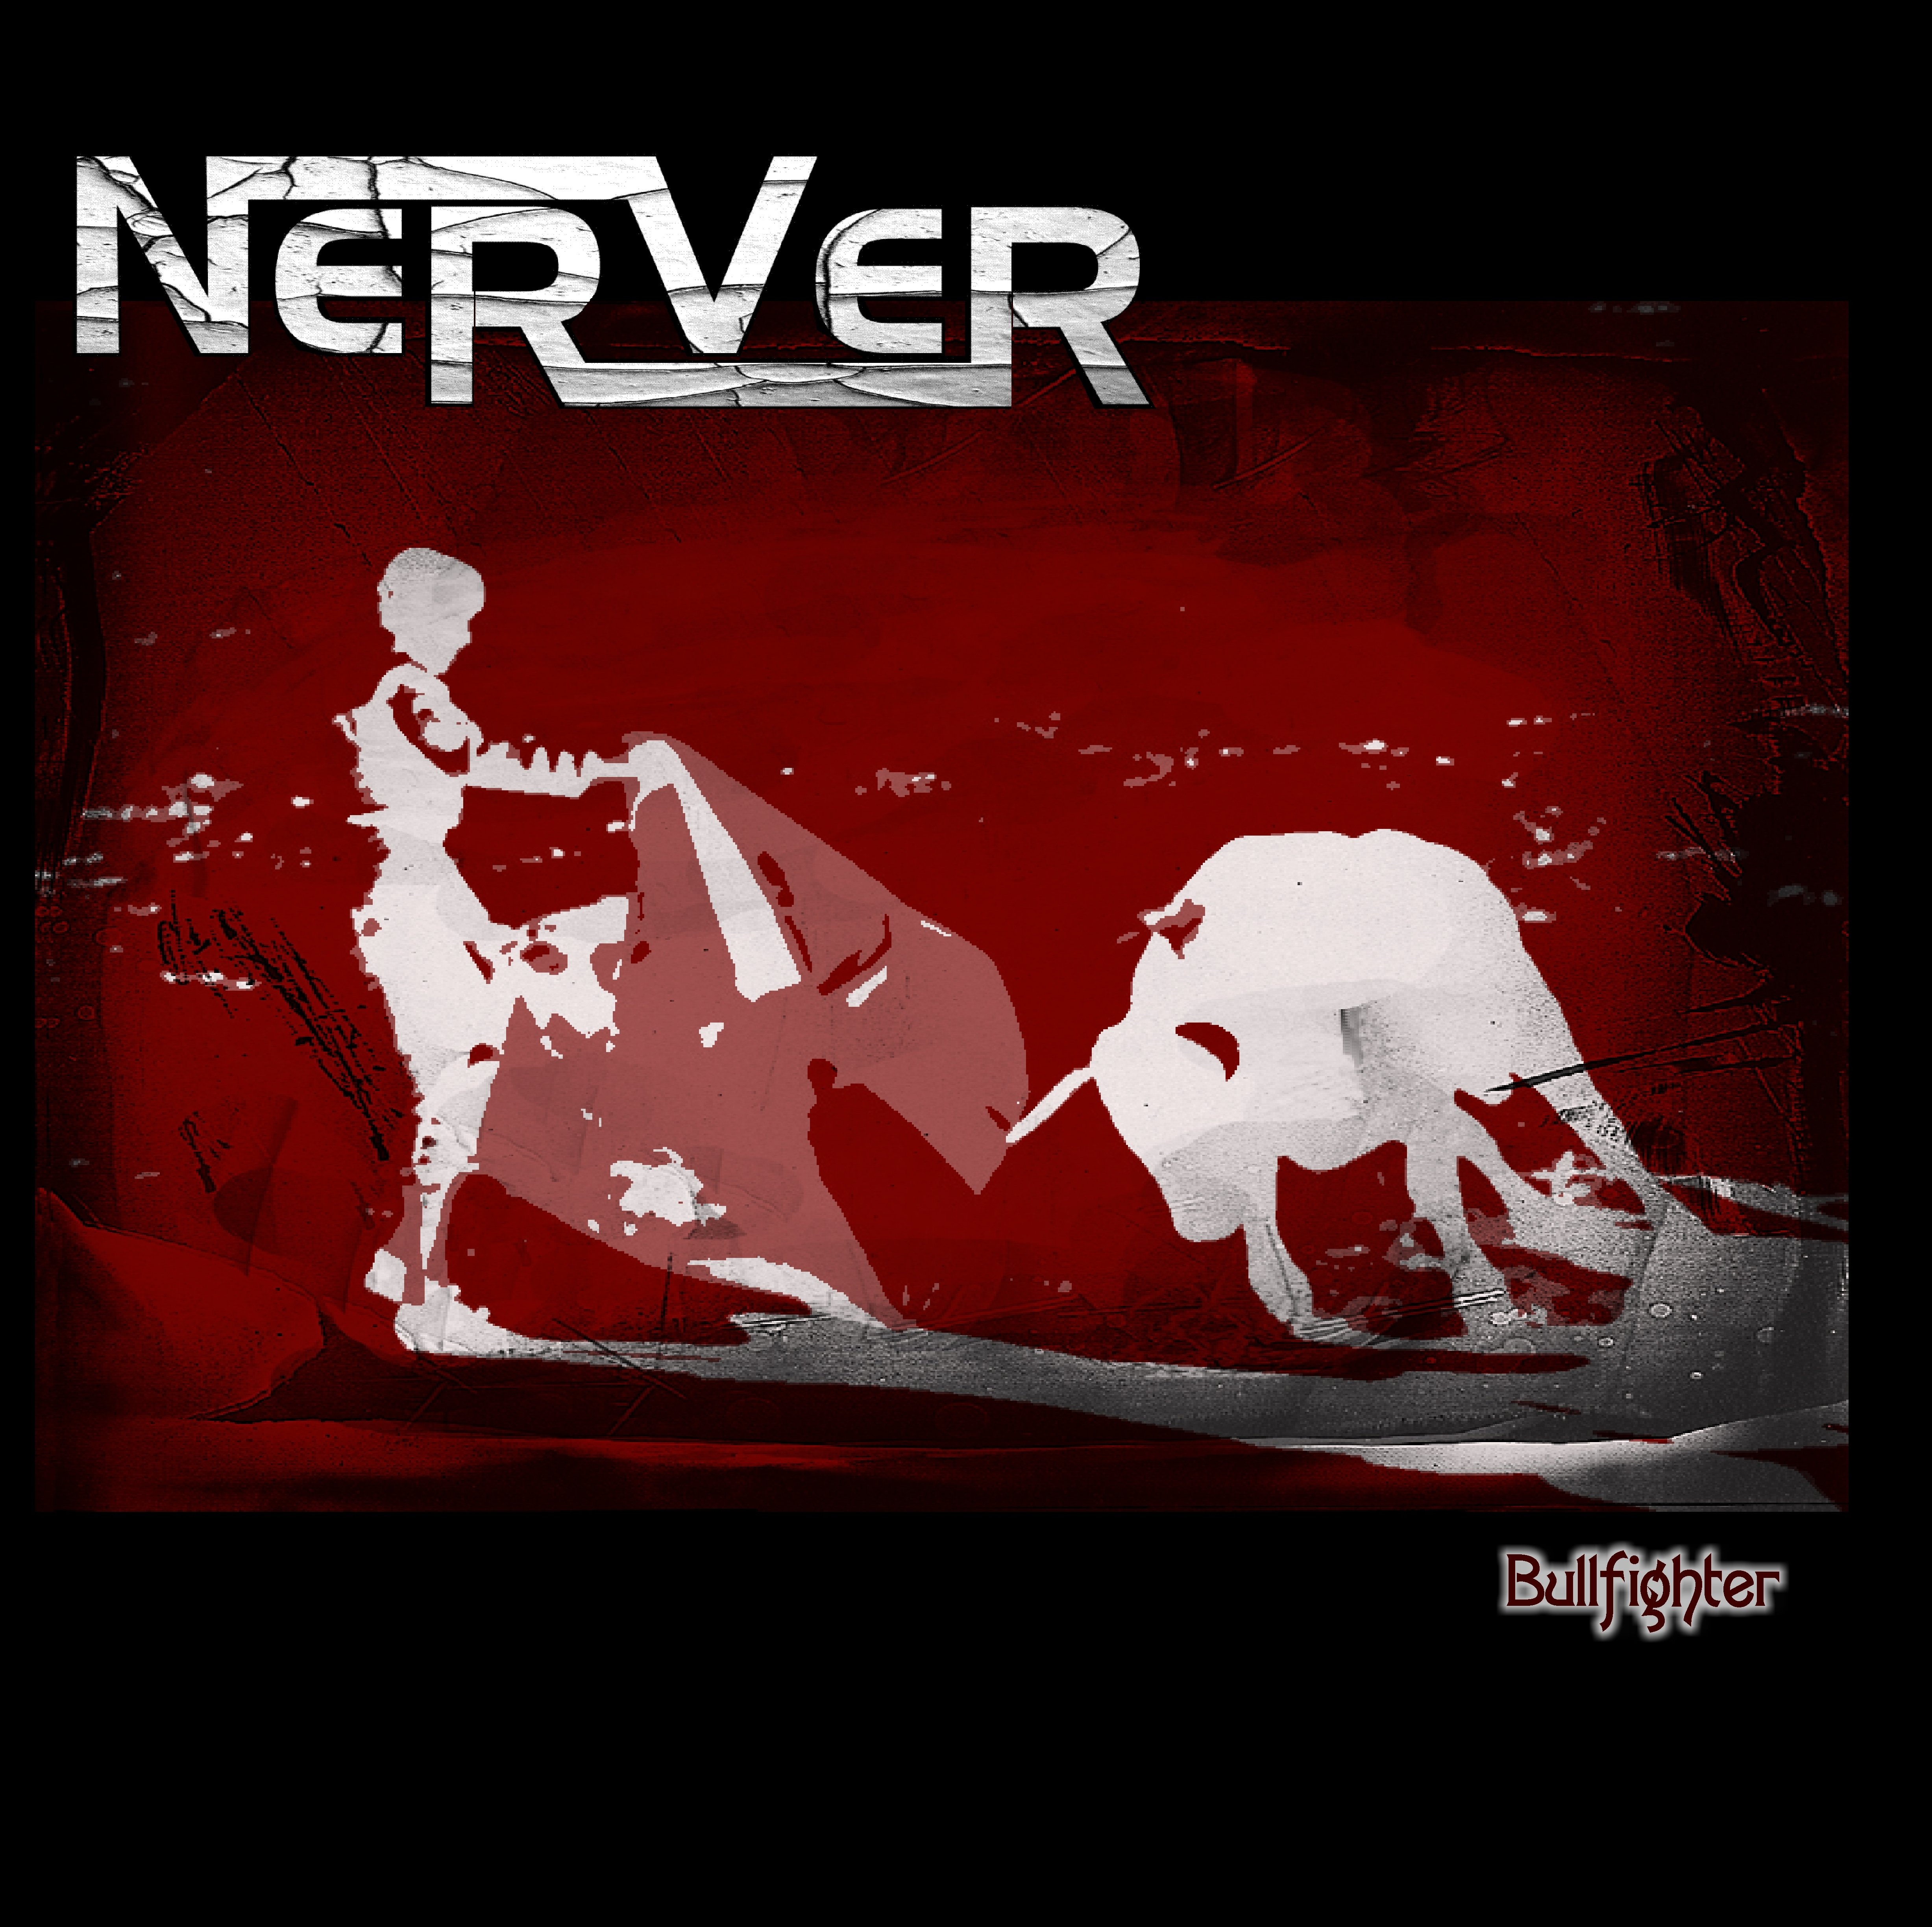 NerVer Bullfighter cover